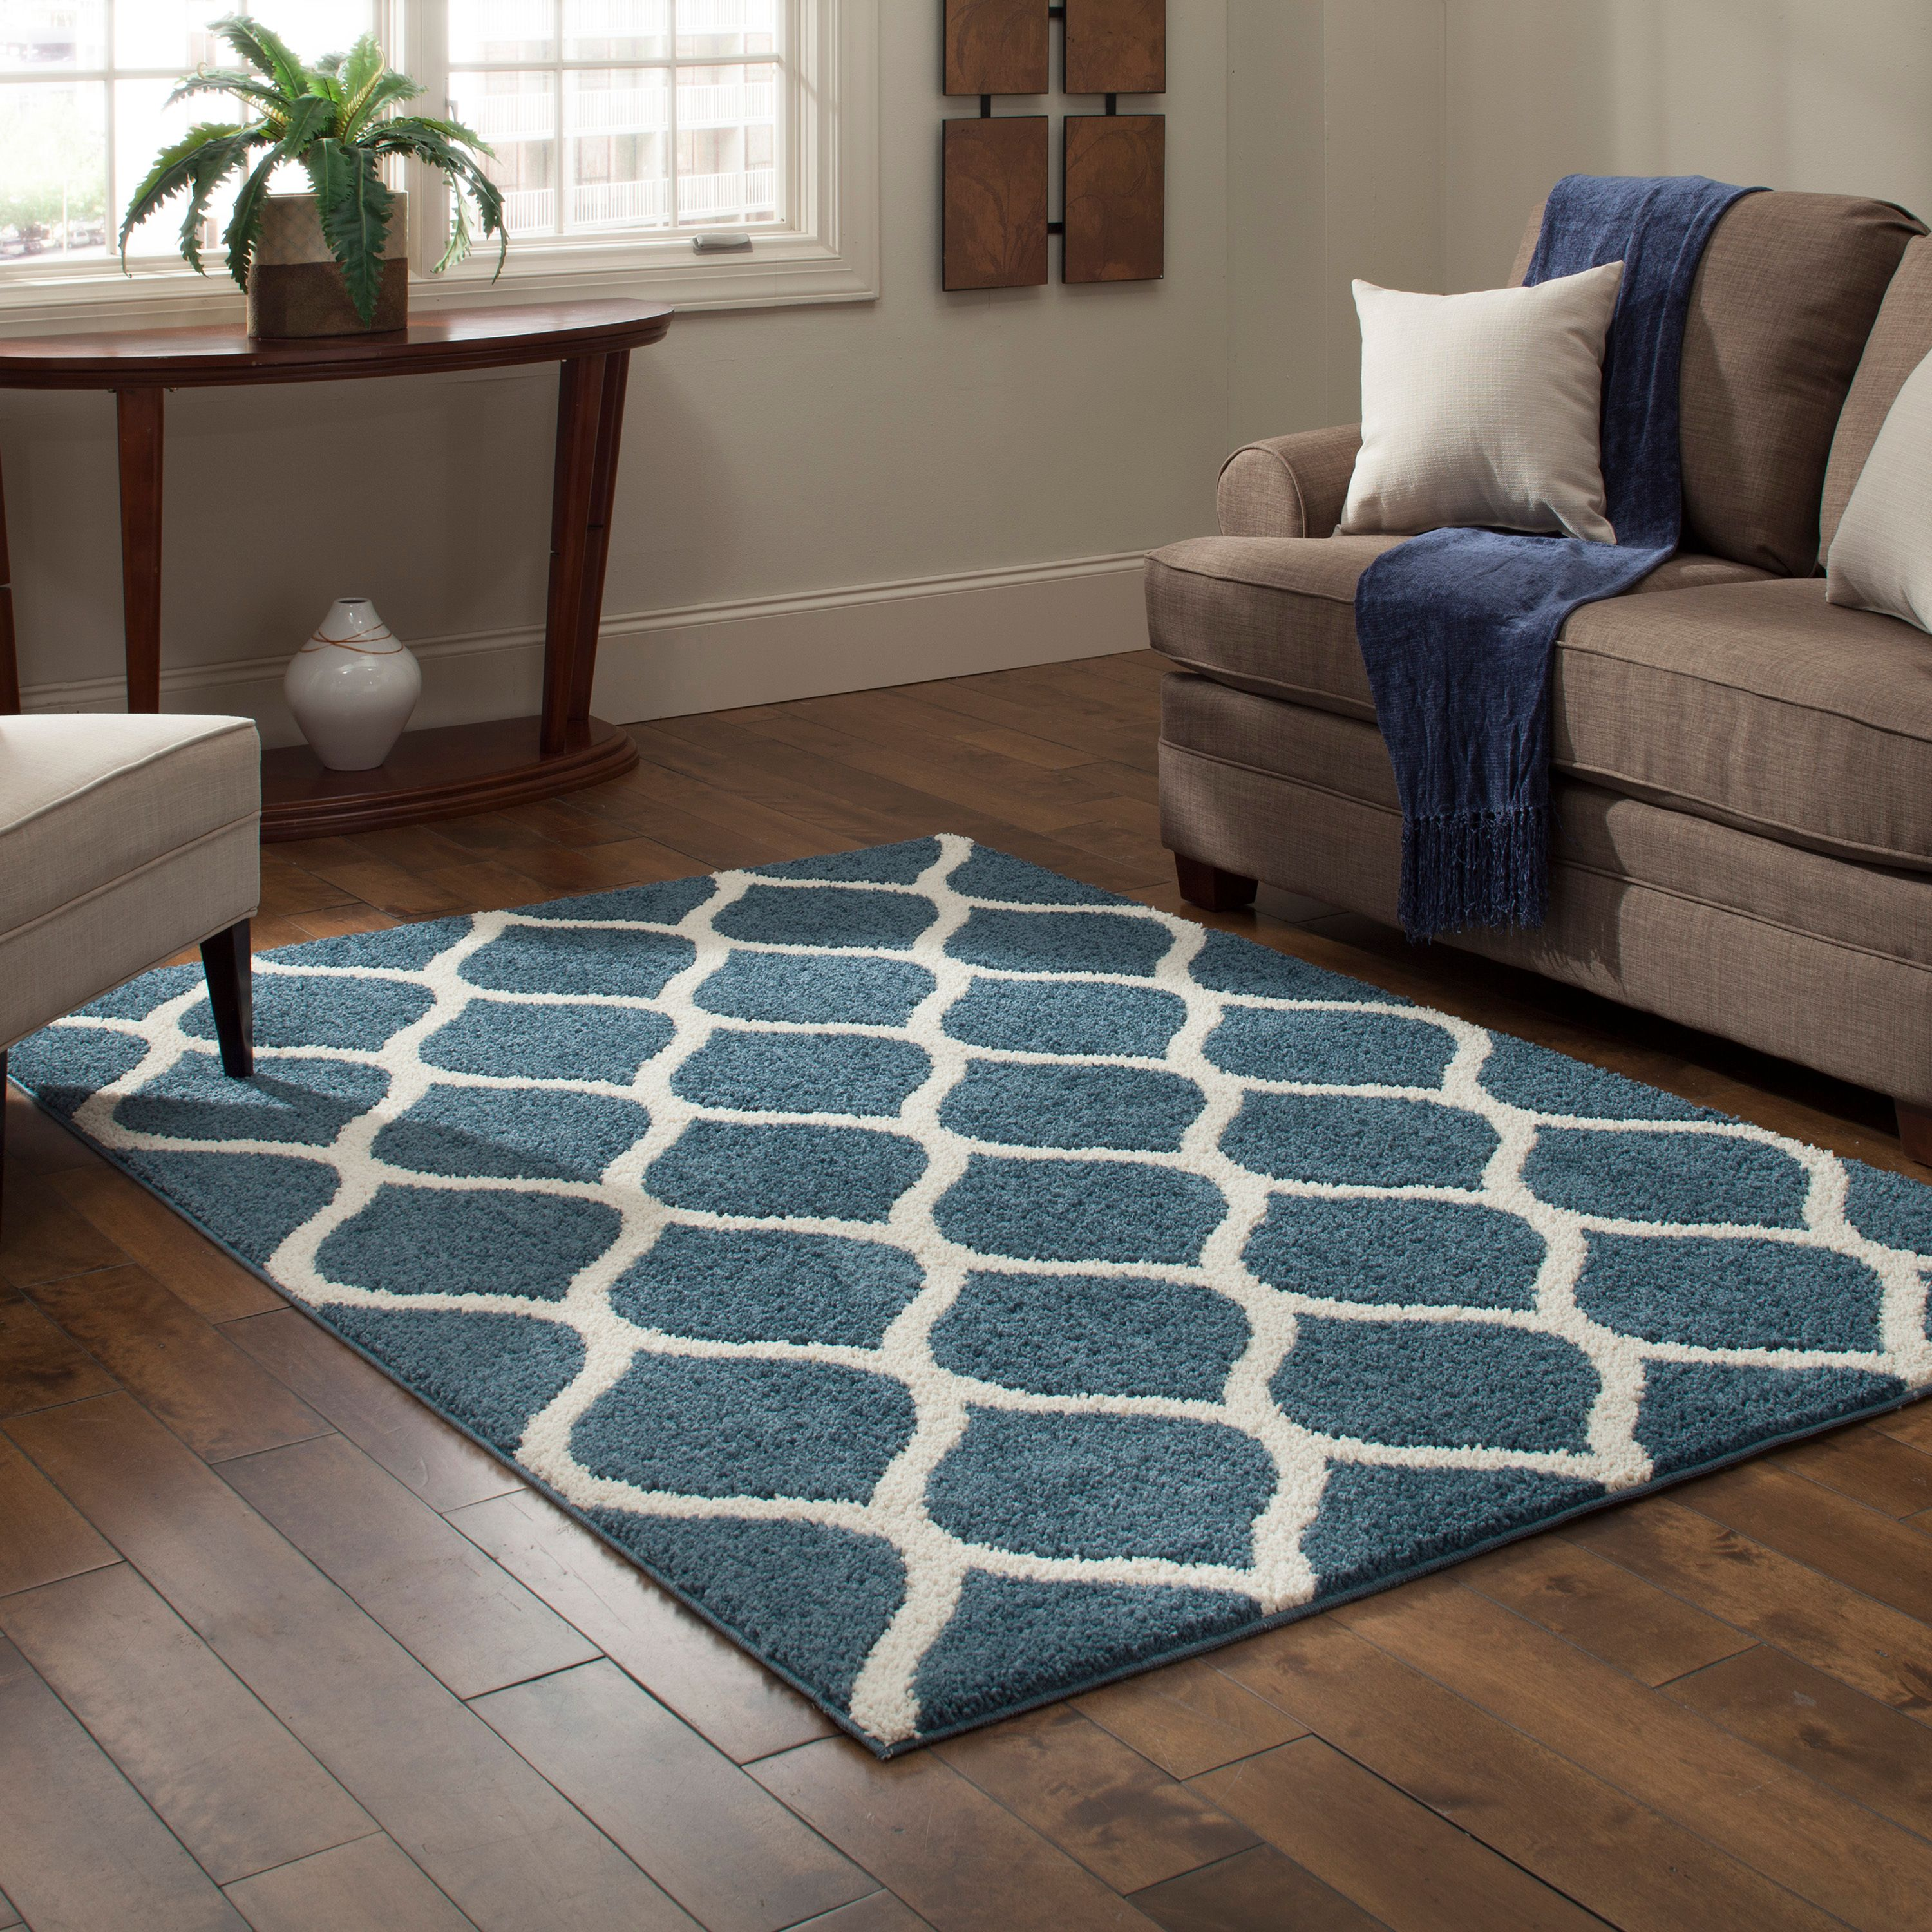 Mainstays Ogee 2-Color Shag Area Rug, Multiple Colors and Sizes